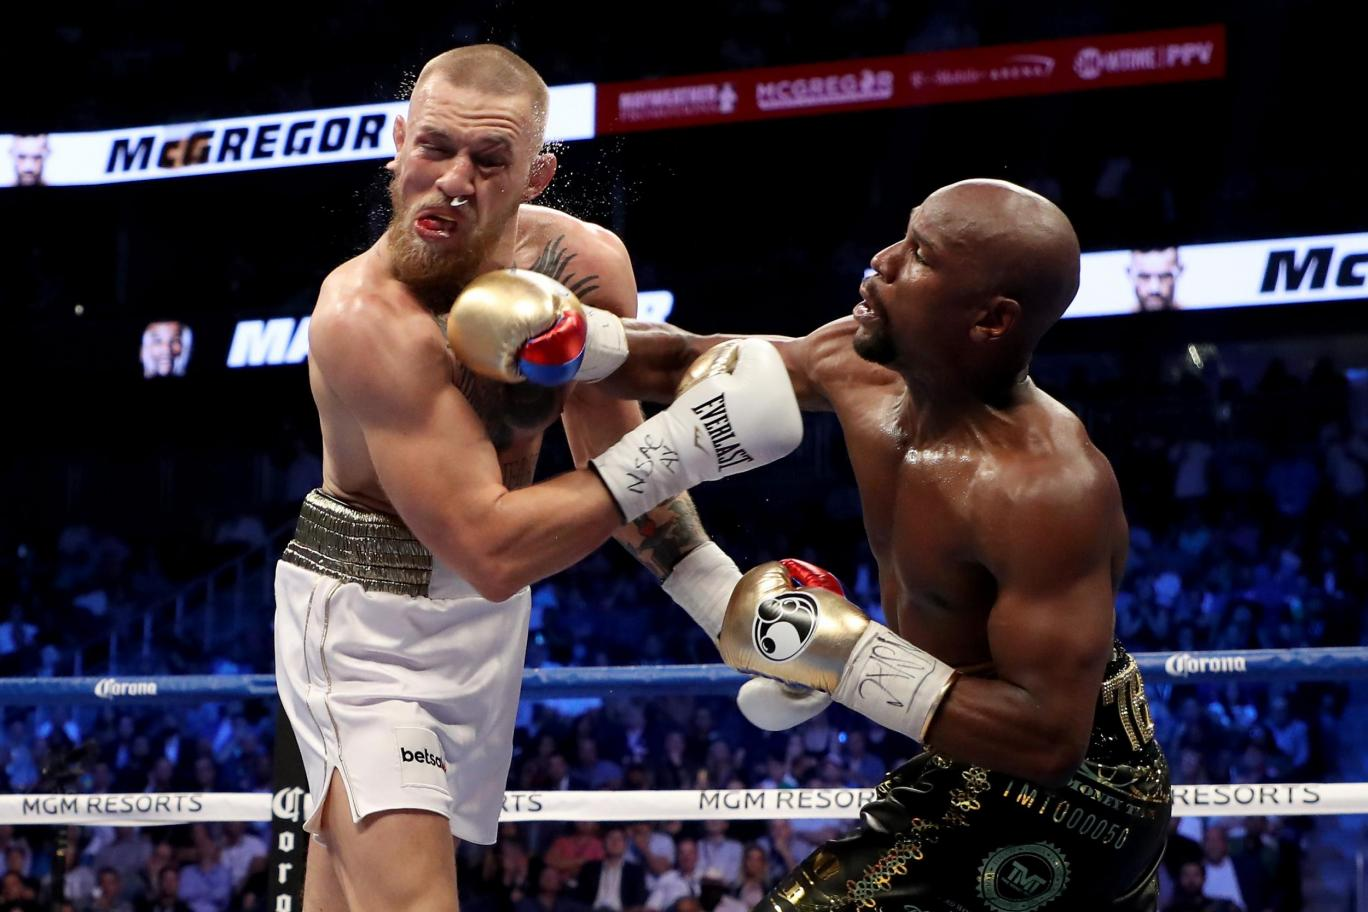 Conor McGregor vs. Floyd Mayweather Jr. - August 26, 2017 - Photo by Beckham pz10, CC BY